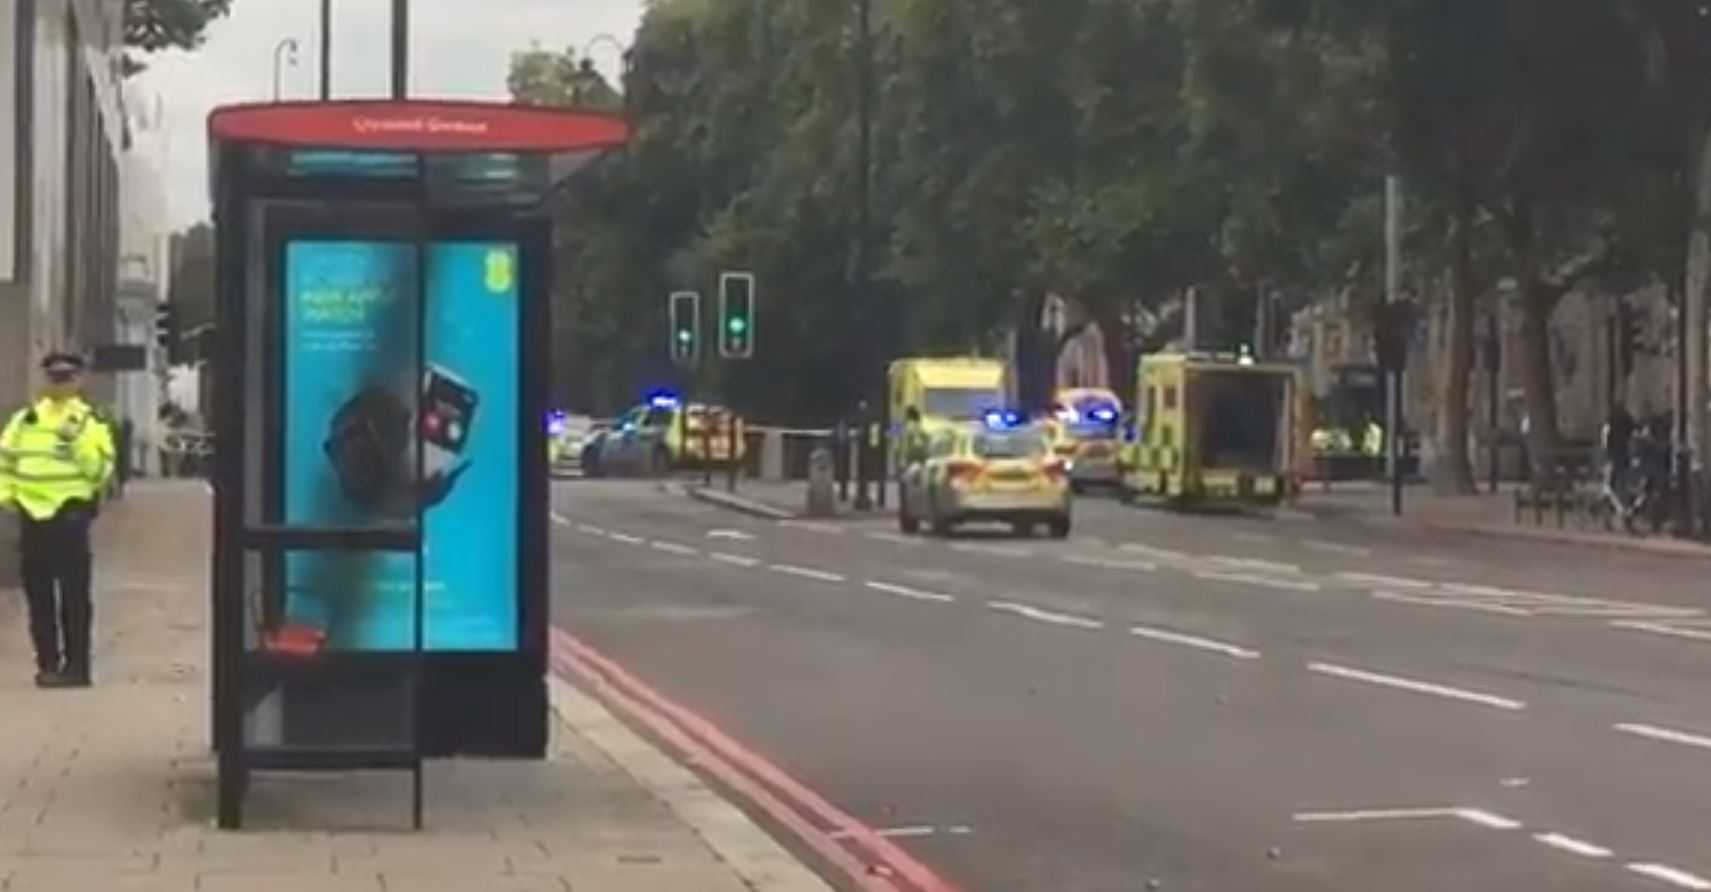 Auto collides near Exhibition road in London, one person detained